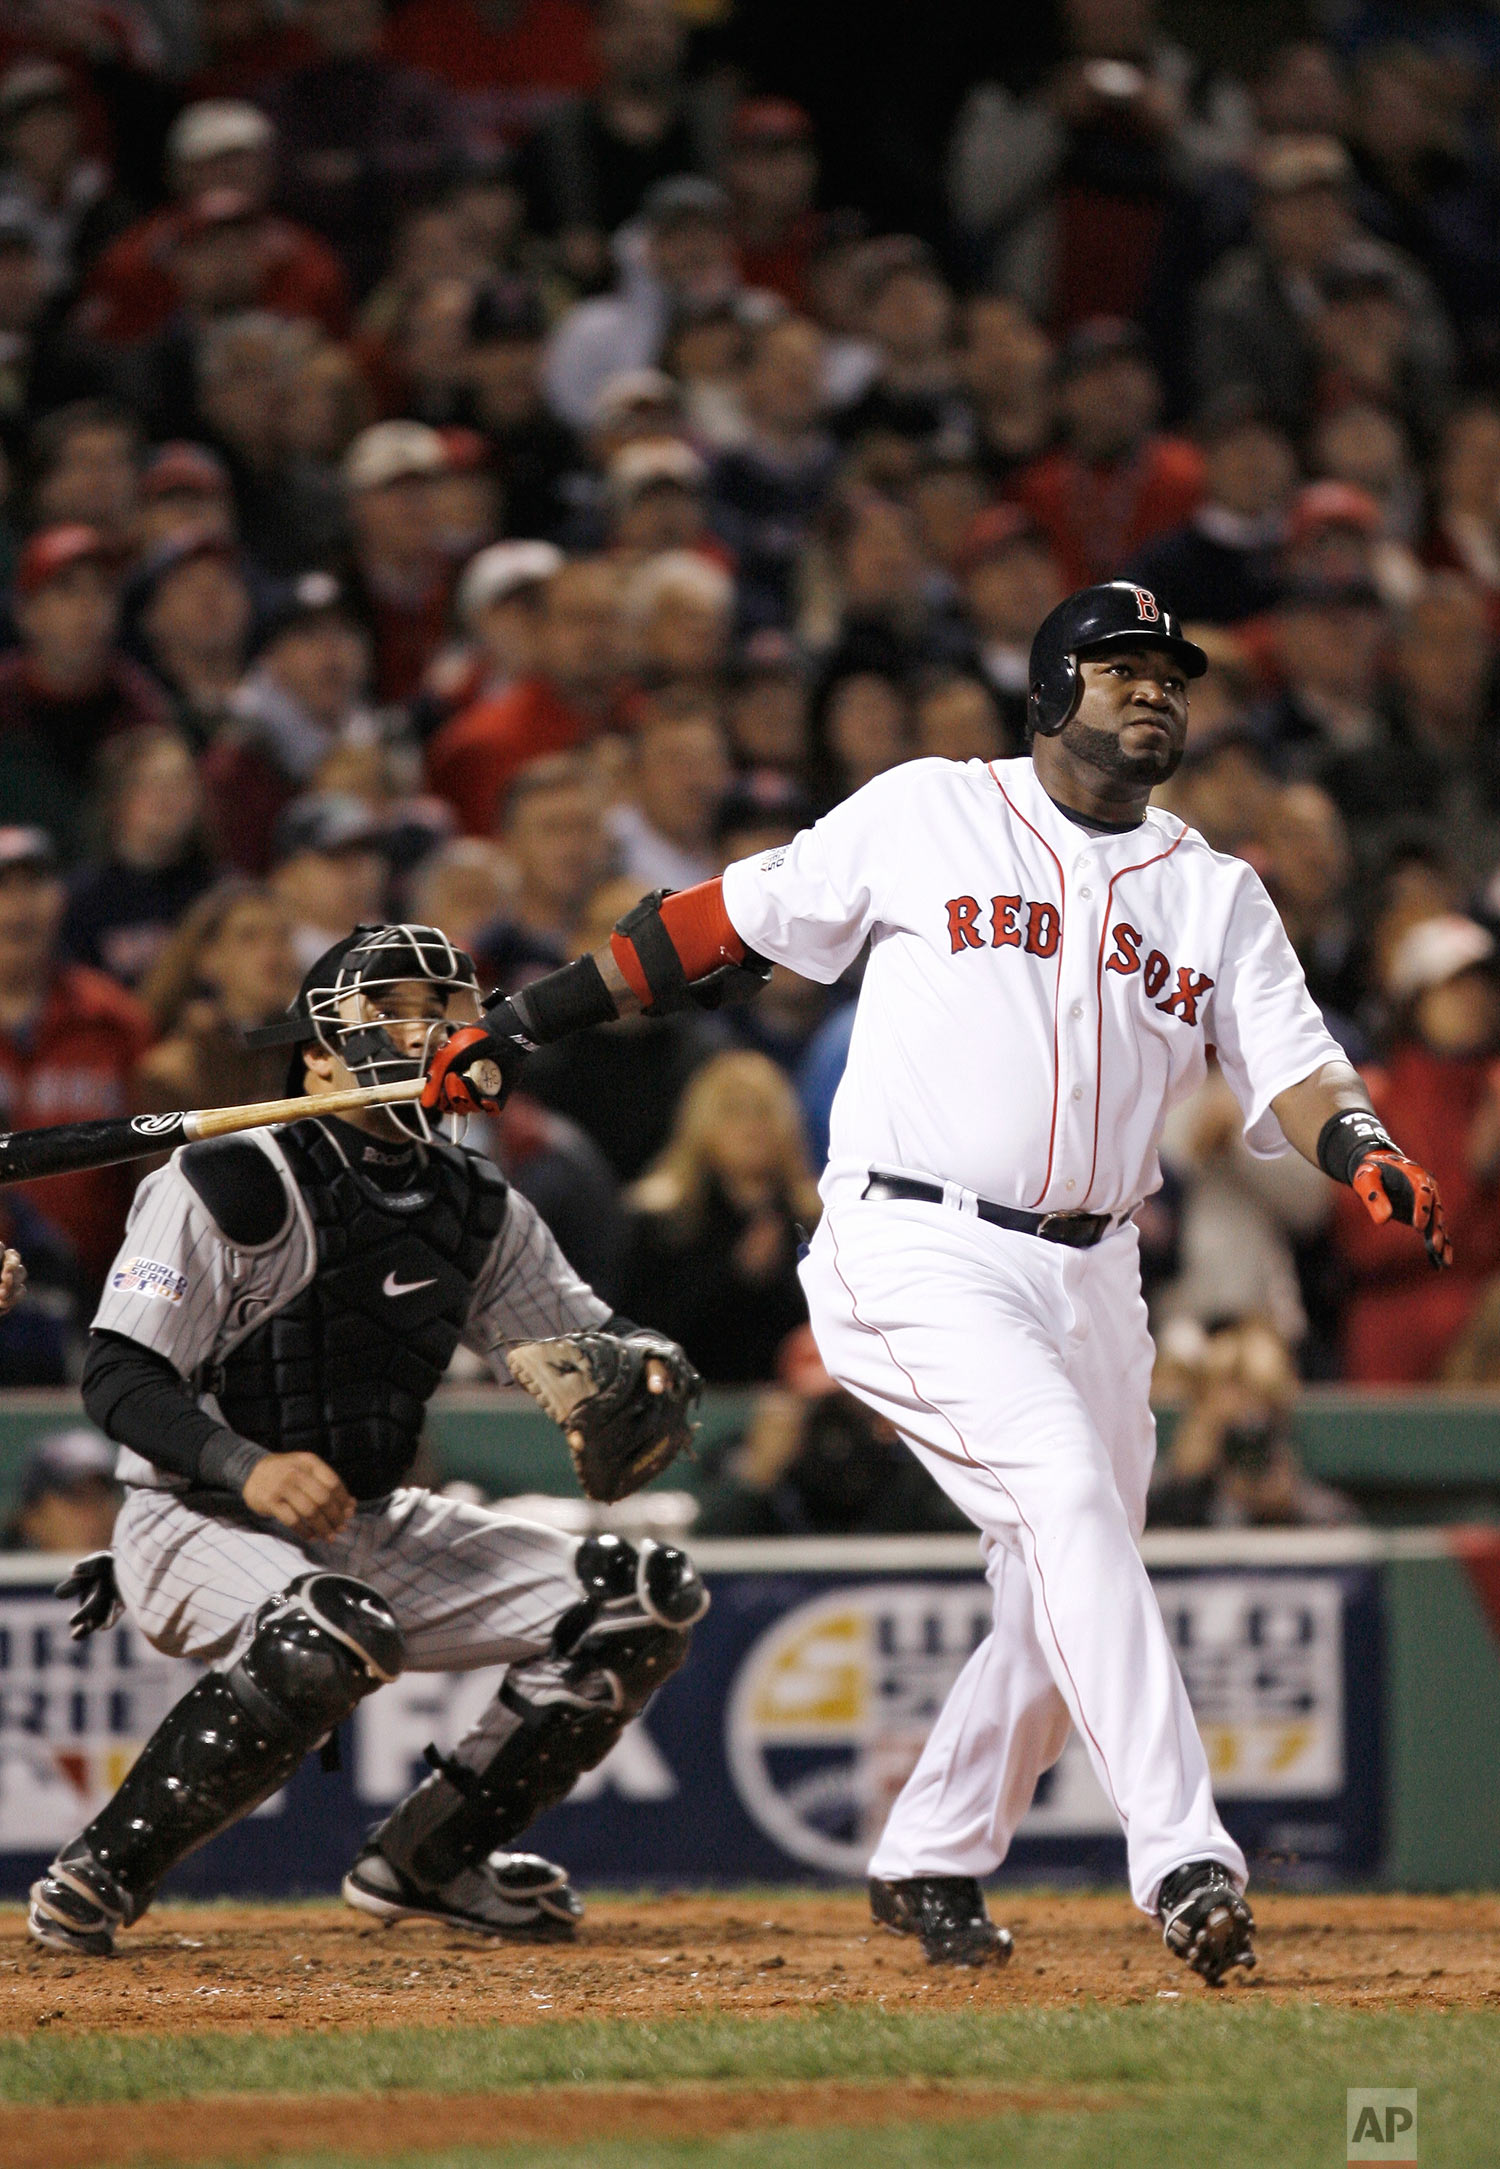 Boston Red Sox designated hitter David Ortiz up at bat in Game 2 of the baseball World Series Thursday, Oct. 25, 2007, at Fenway Park in Boston. (AP Photo/Winslow Townson)